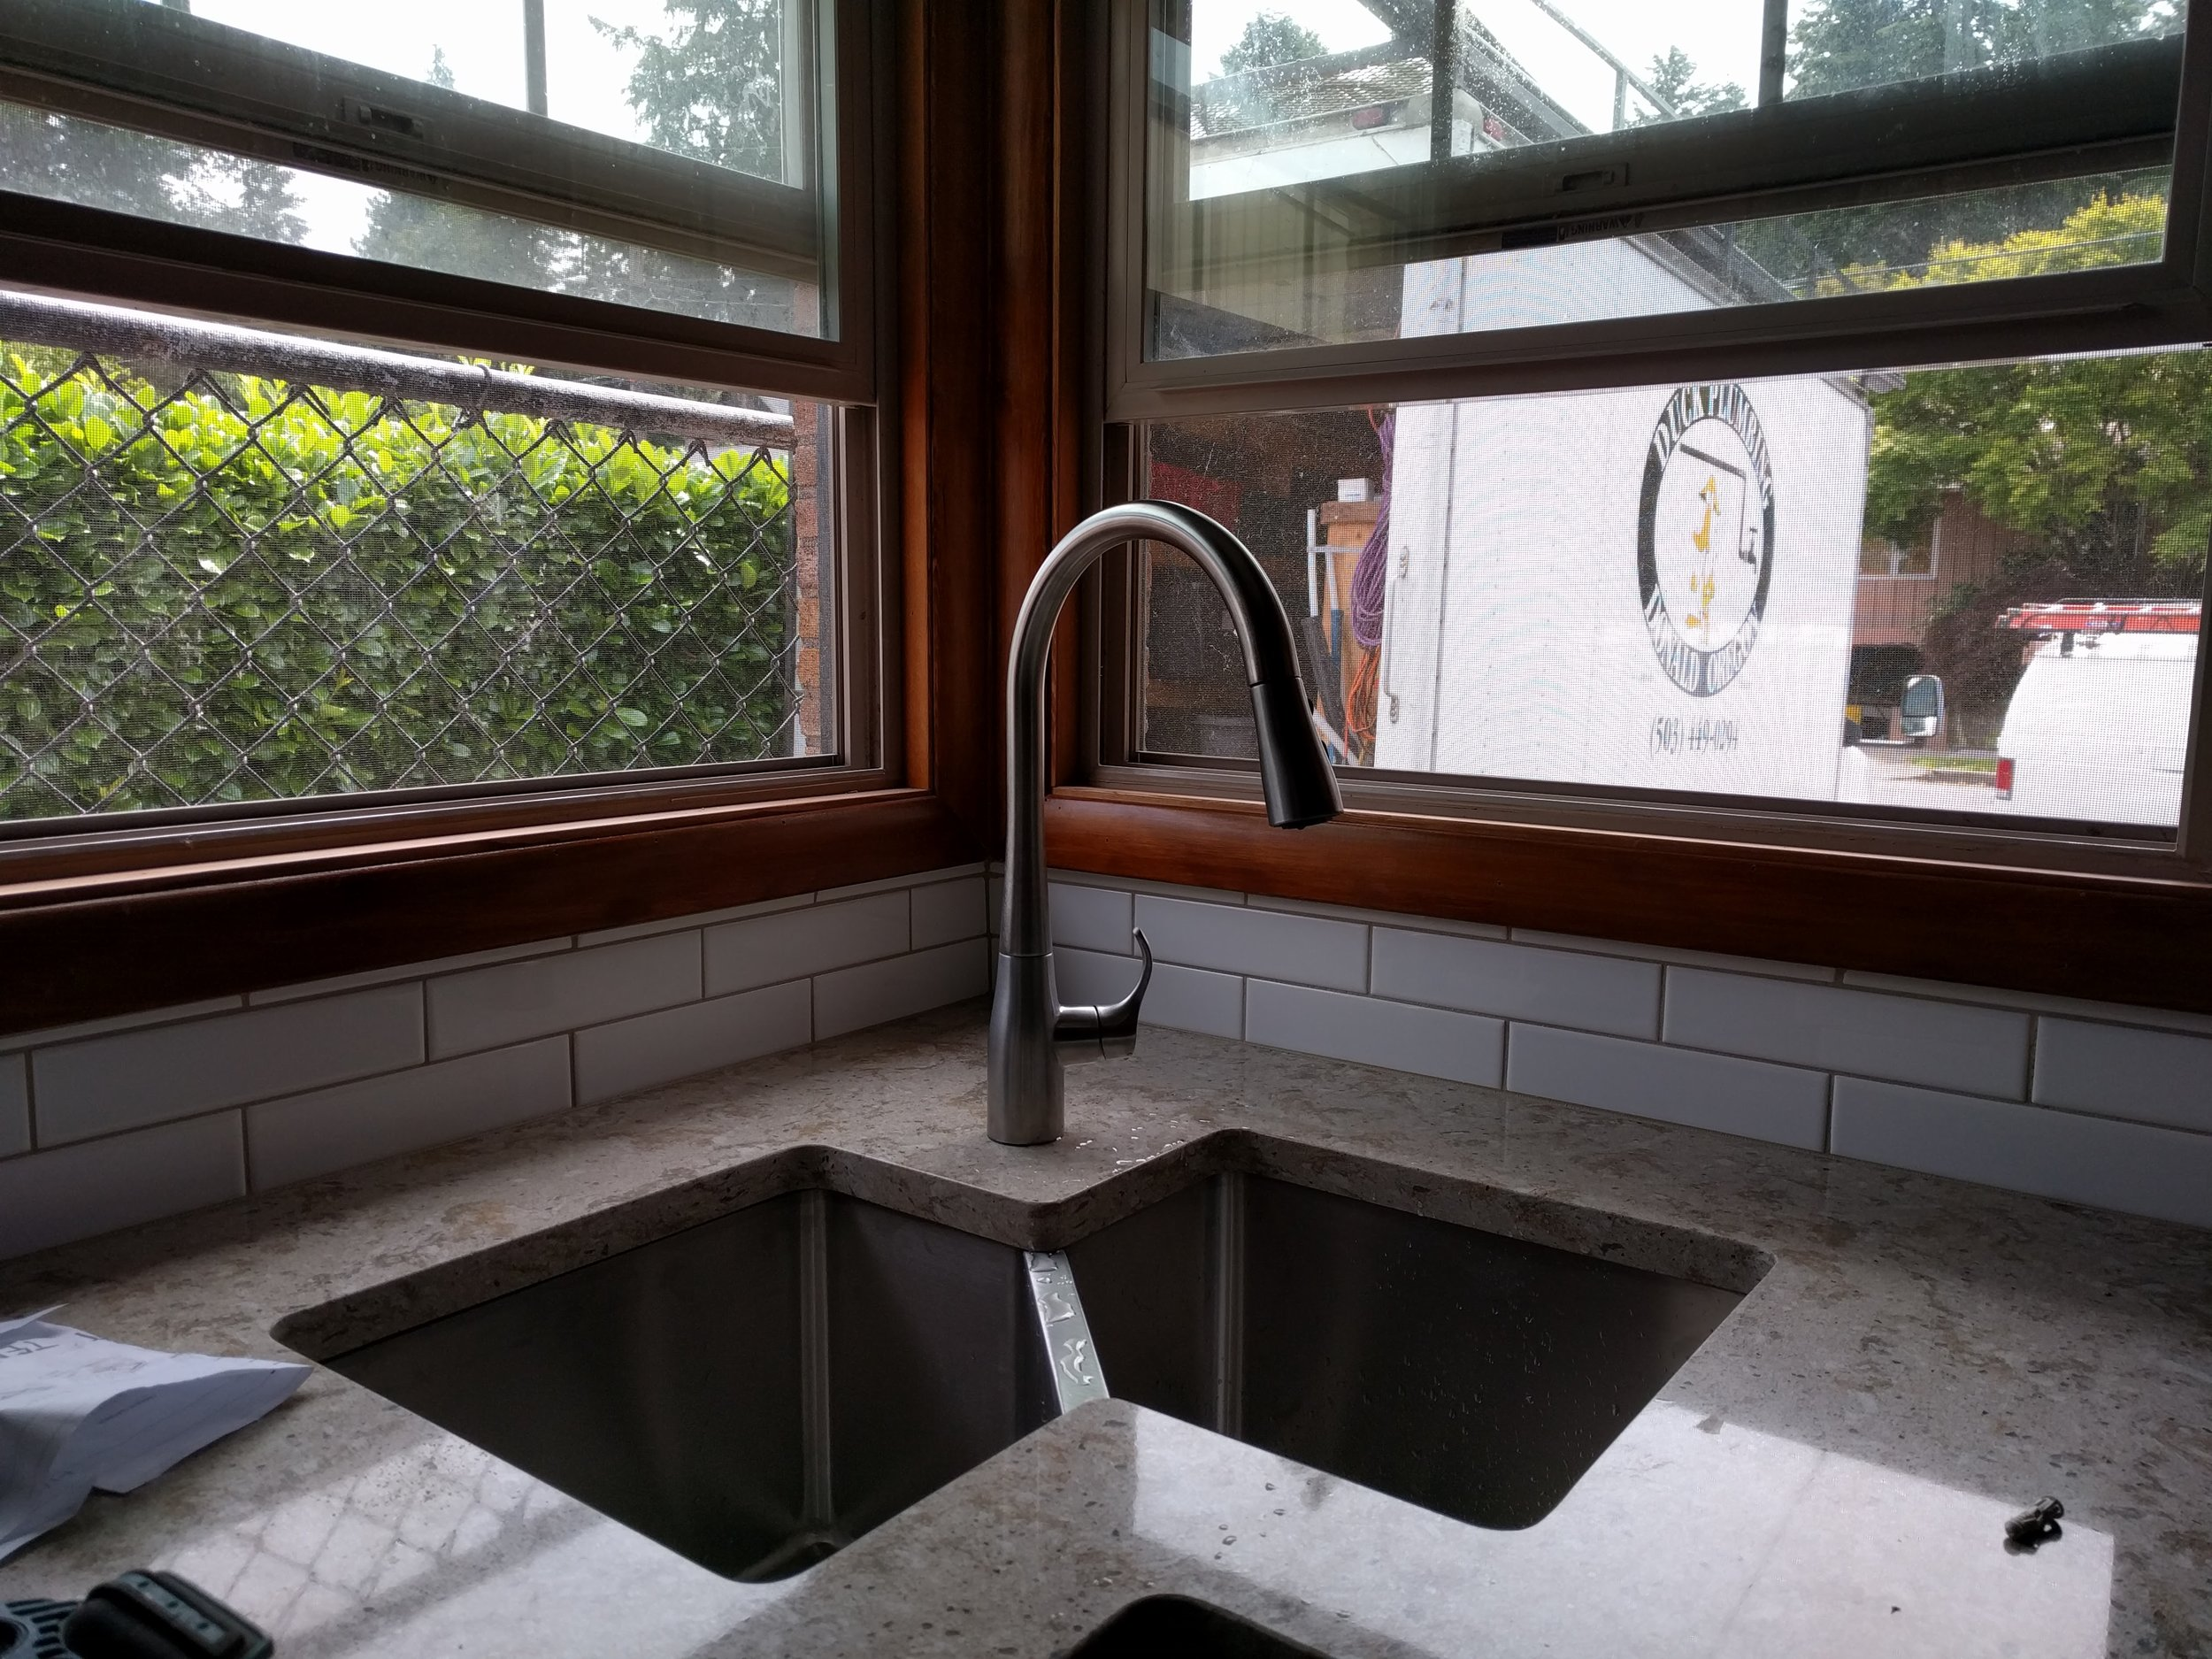 New Sink installed on Jun 1, 2016